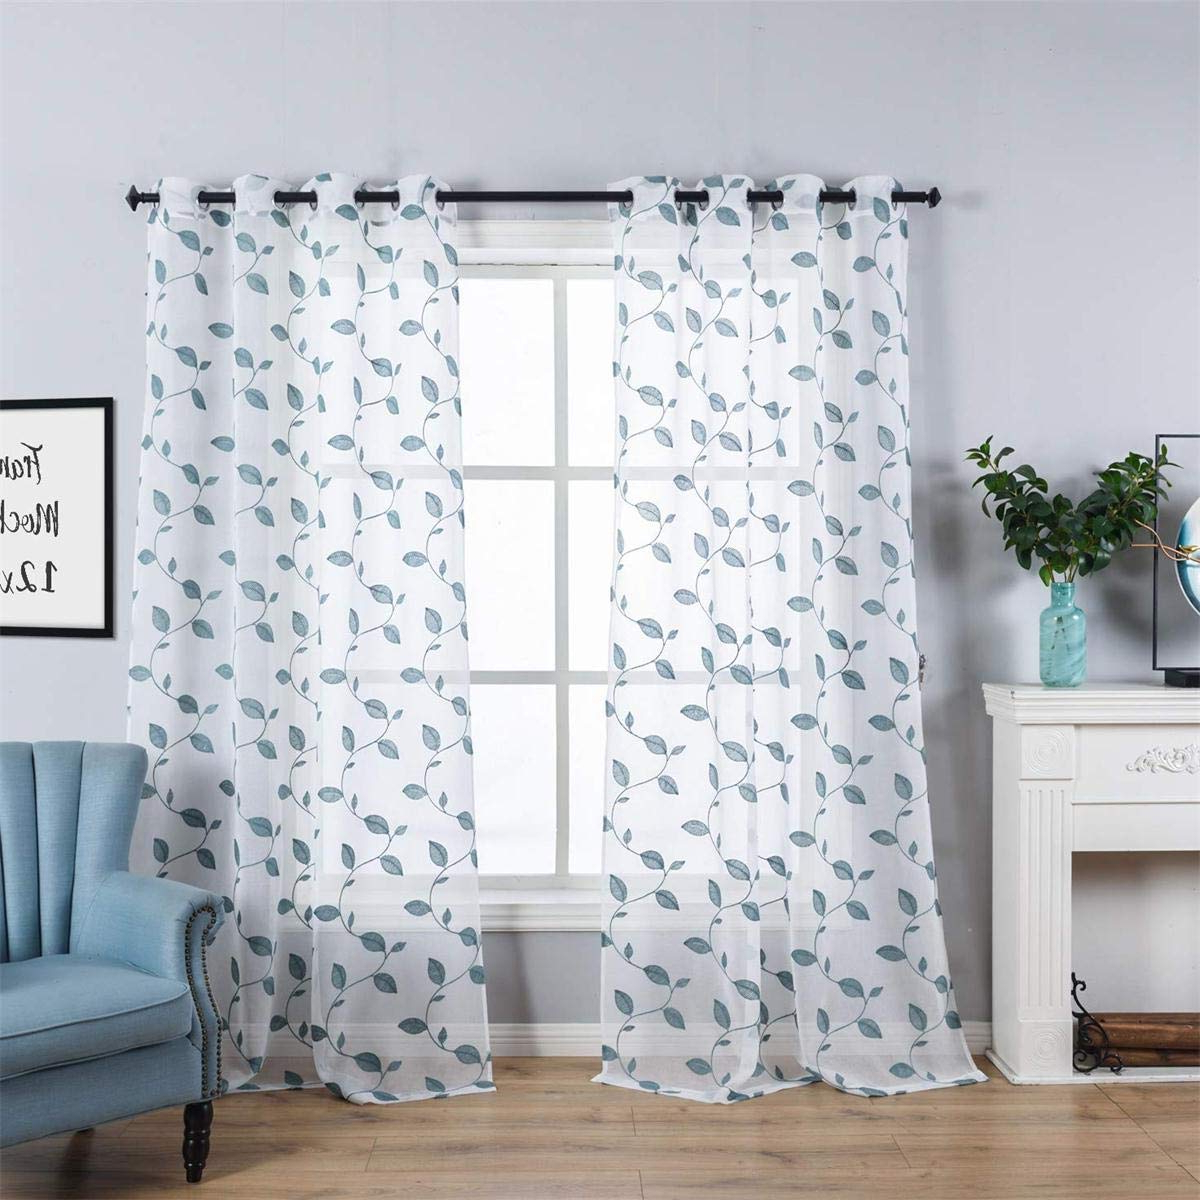 Widely Used Kida Embroidered Sheer Curtain Panels Within Taisier Home Teal Embroidered Leaves Sheer Curtains Floral Sheer Curtains For Kids Living Room White Voile Window Curtain Panels Ring Top 52 X 95 Inch (View 6 of 20)